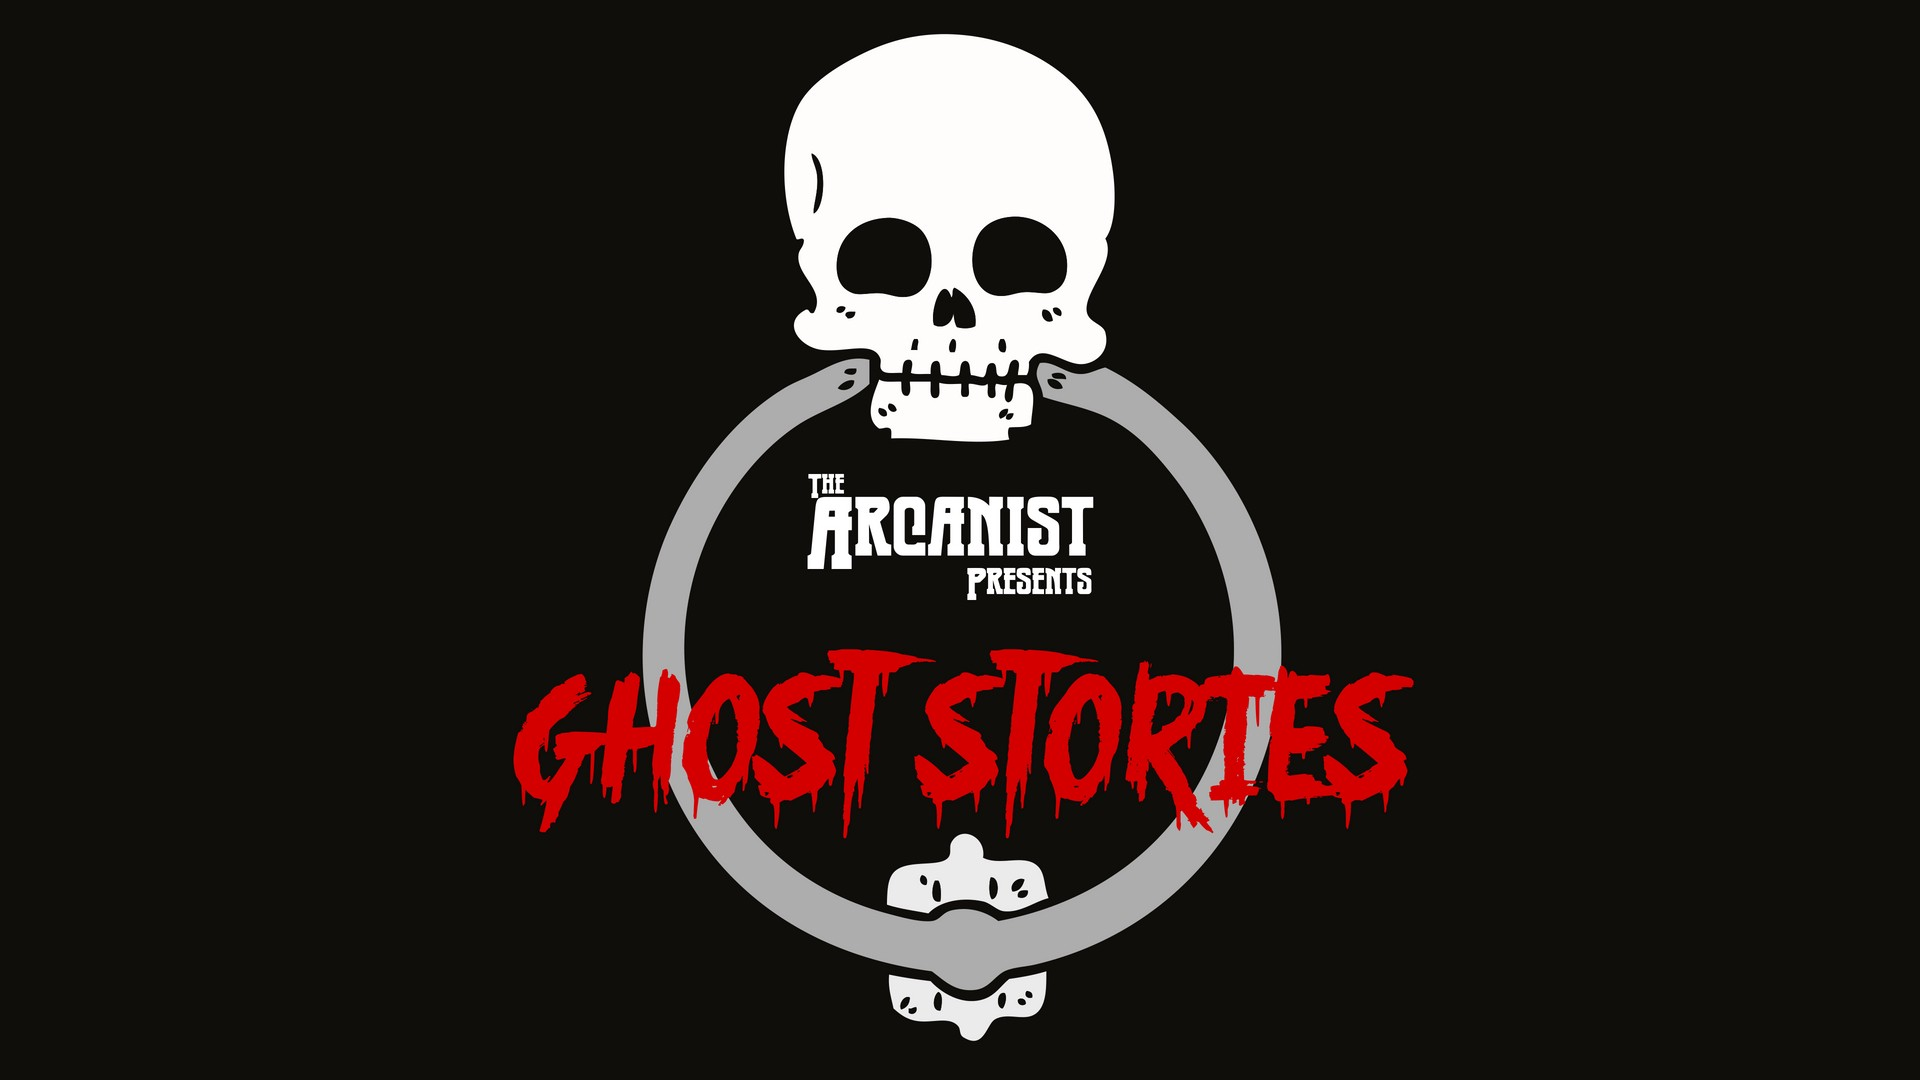 Calling All Ghost Stories: (Closed!) - The Arcanist